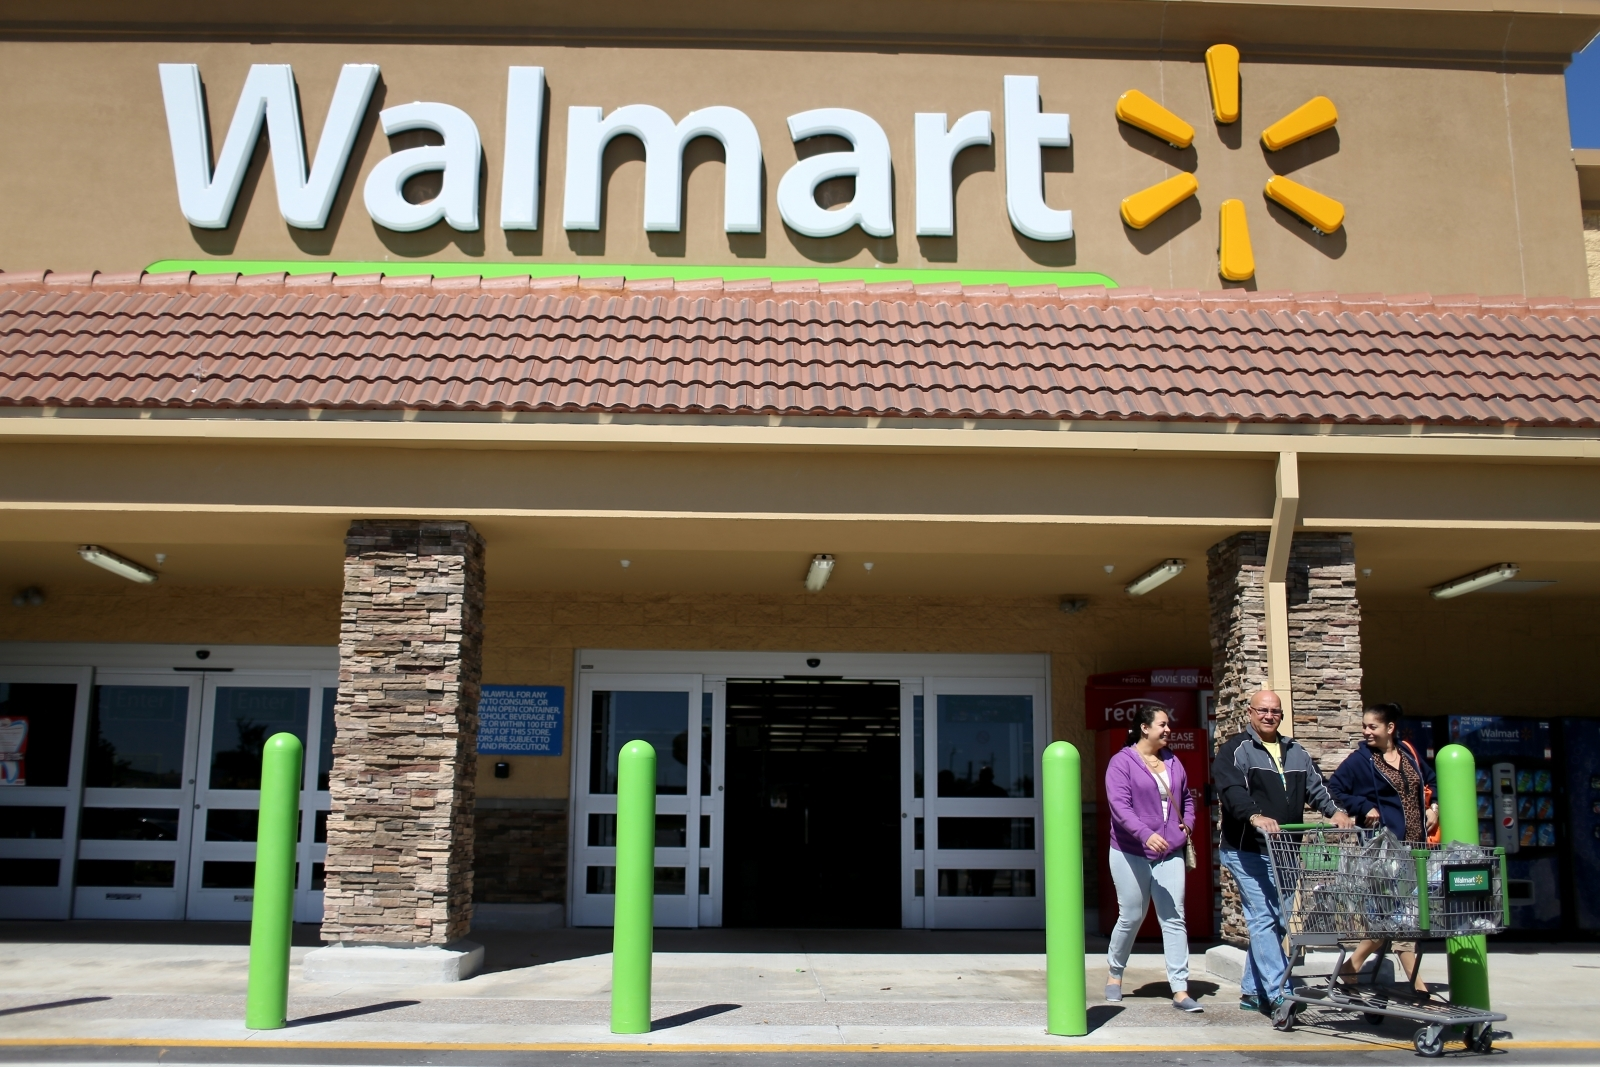 Why Walmart changed its name